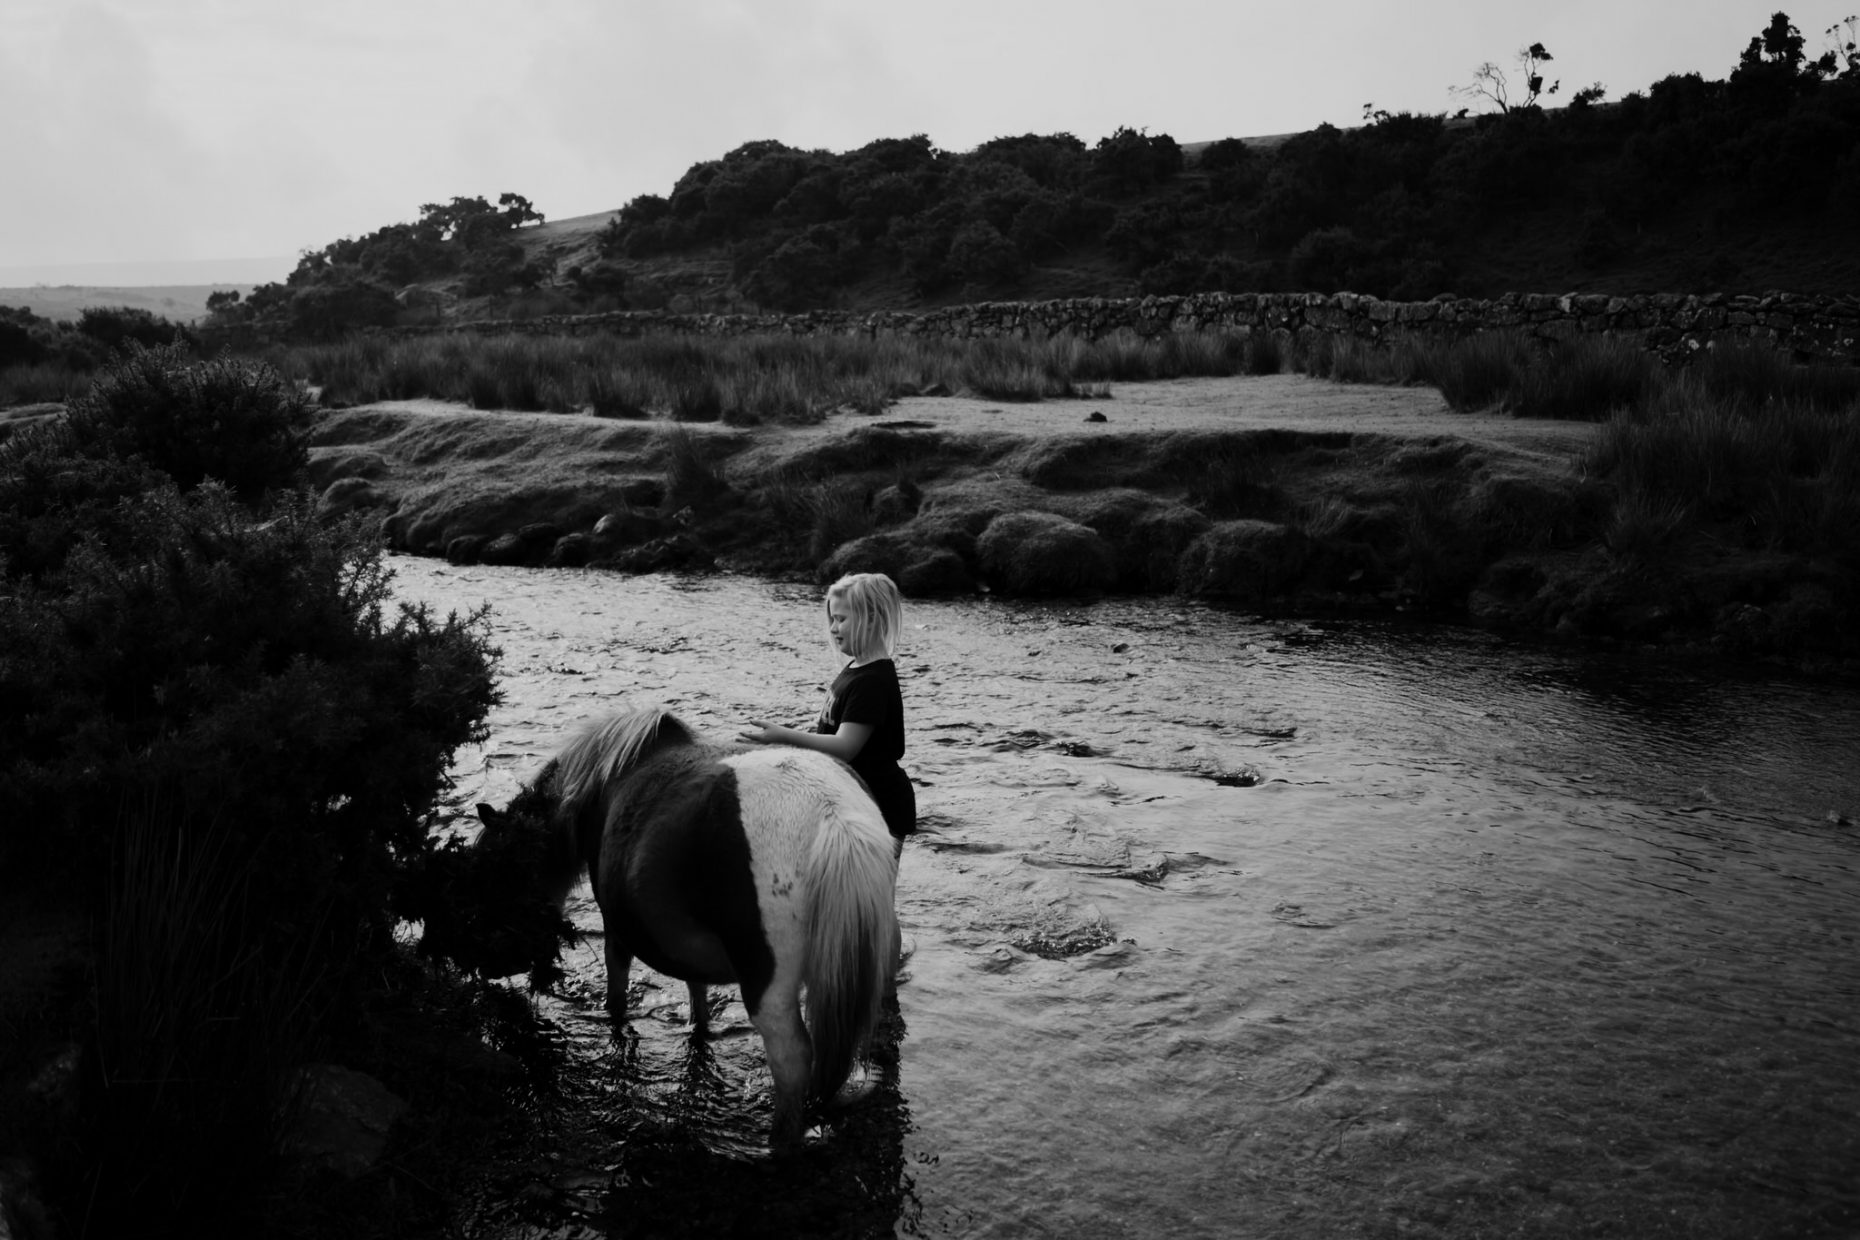 A child is standing in the river talking to a horse as he gently strokes its back